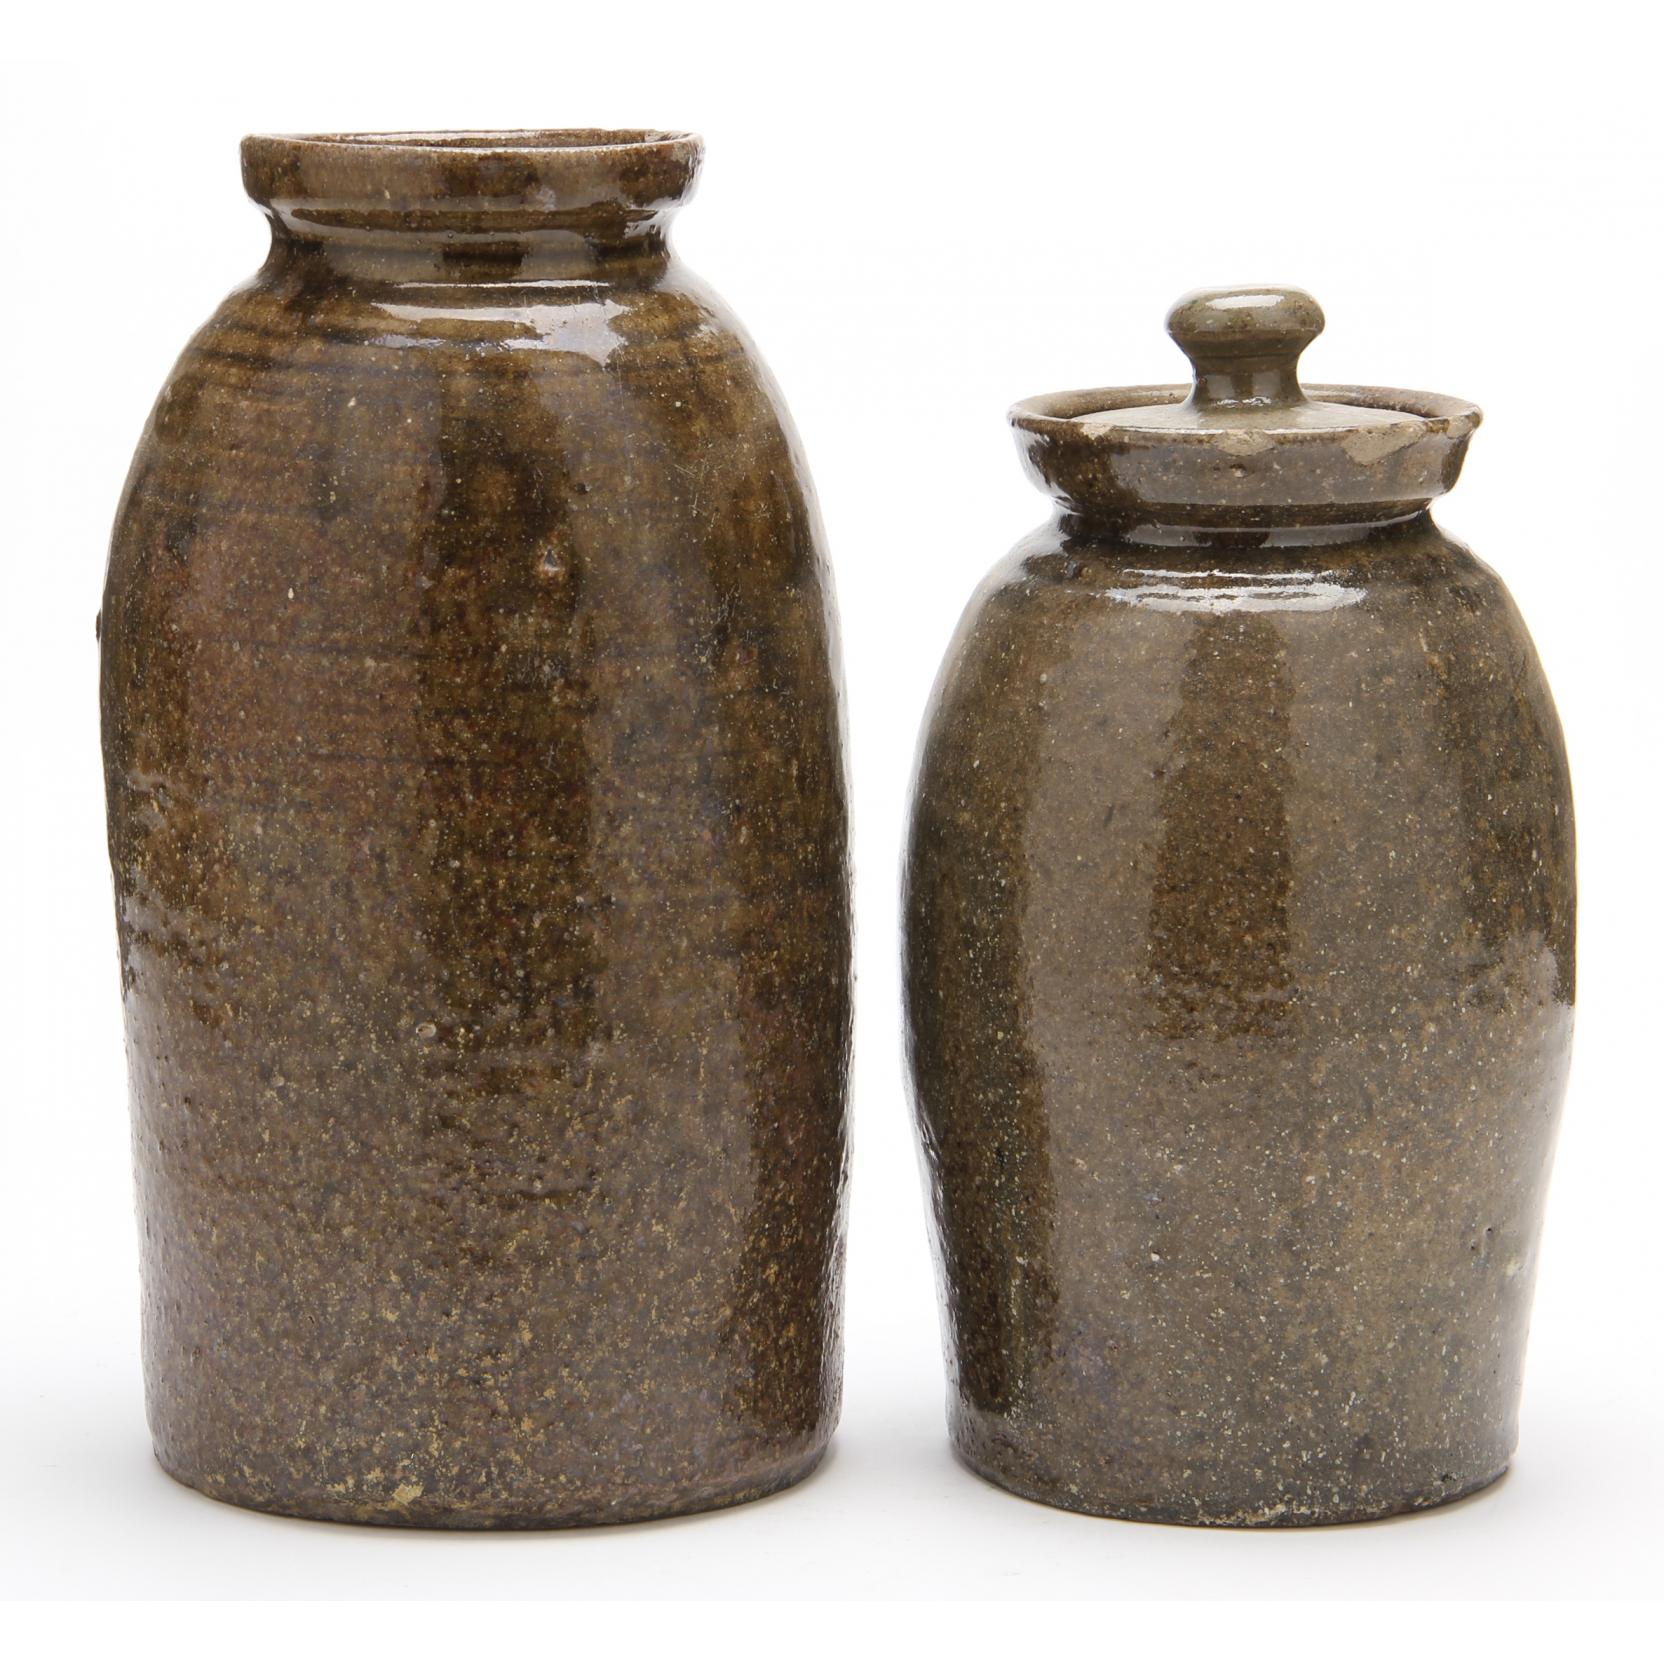 nc-pottery-two-canning-storage-jars